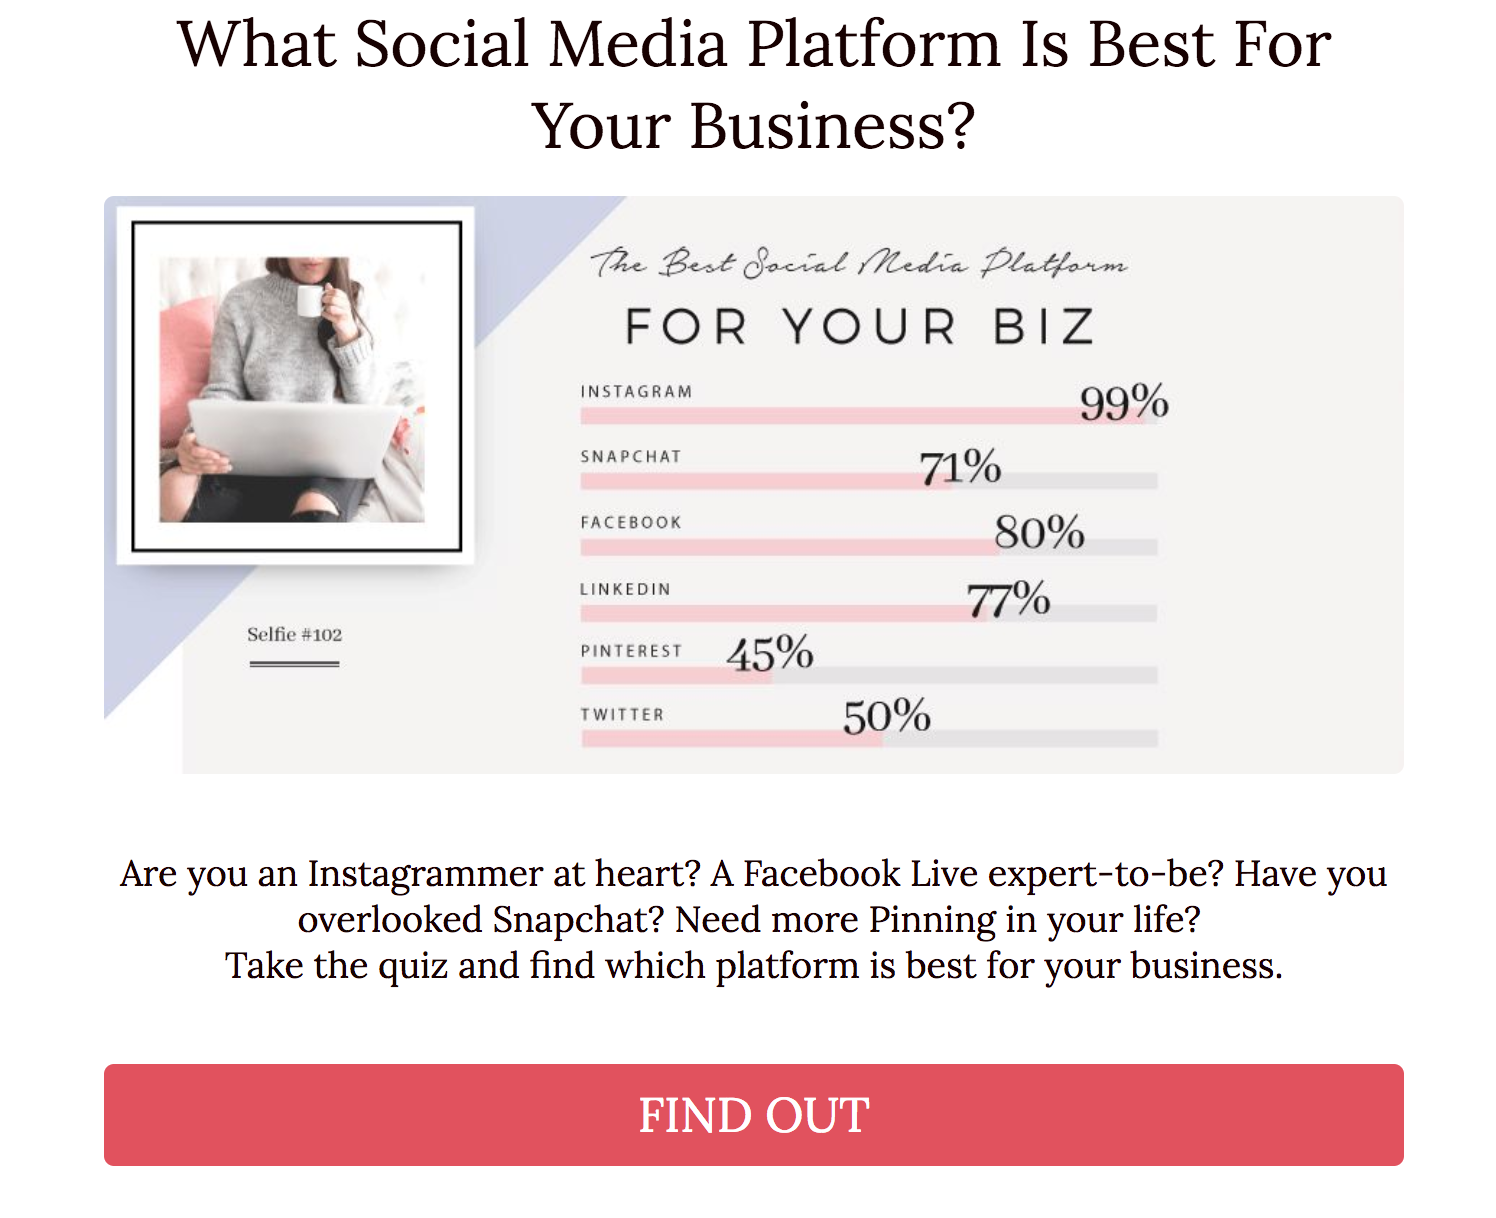 What social media platorm is best for your business with percentages example results and take quiz button